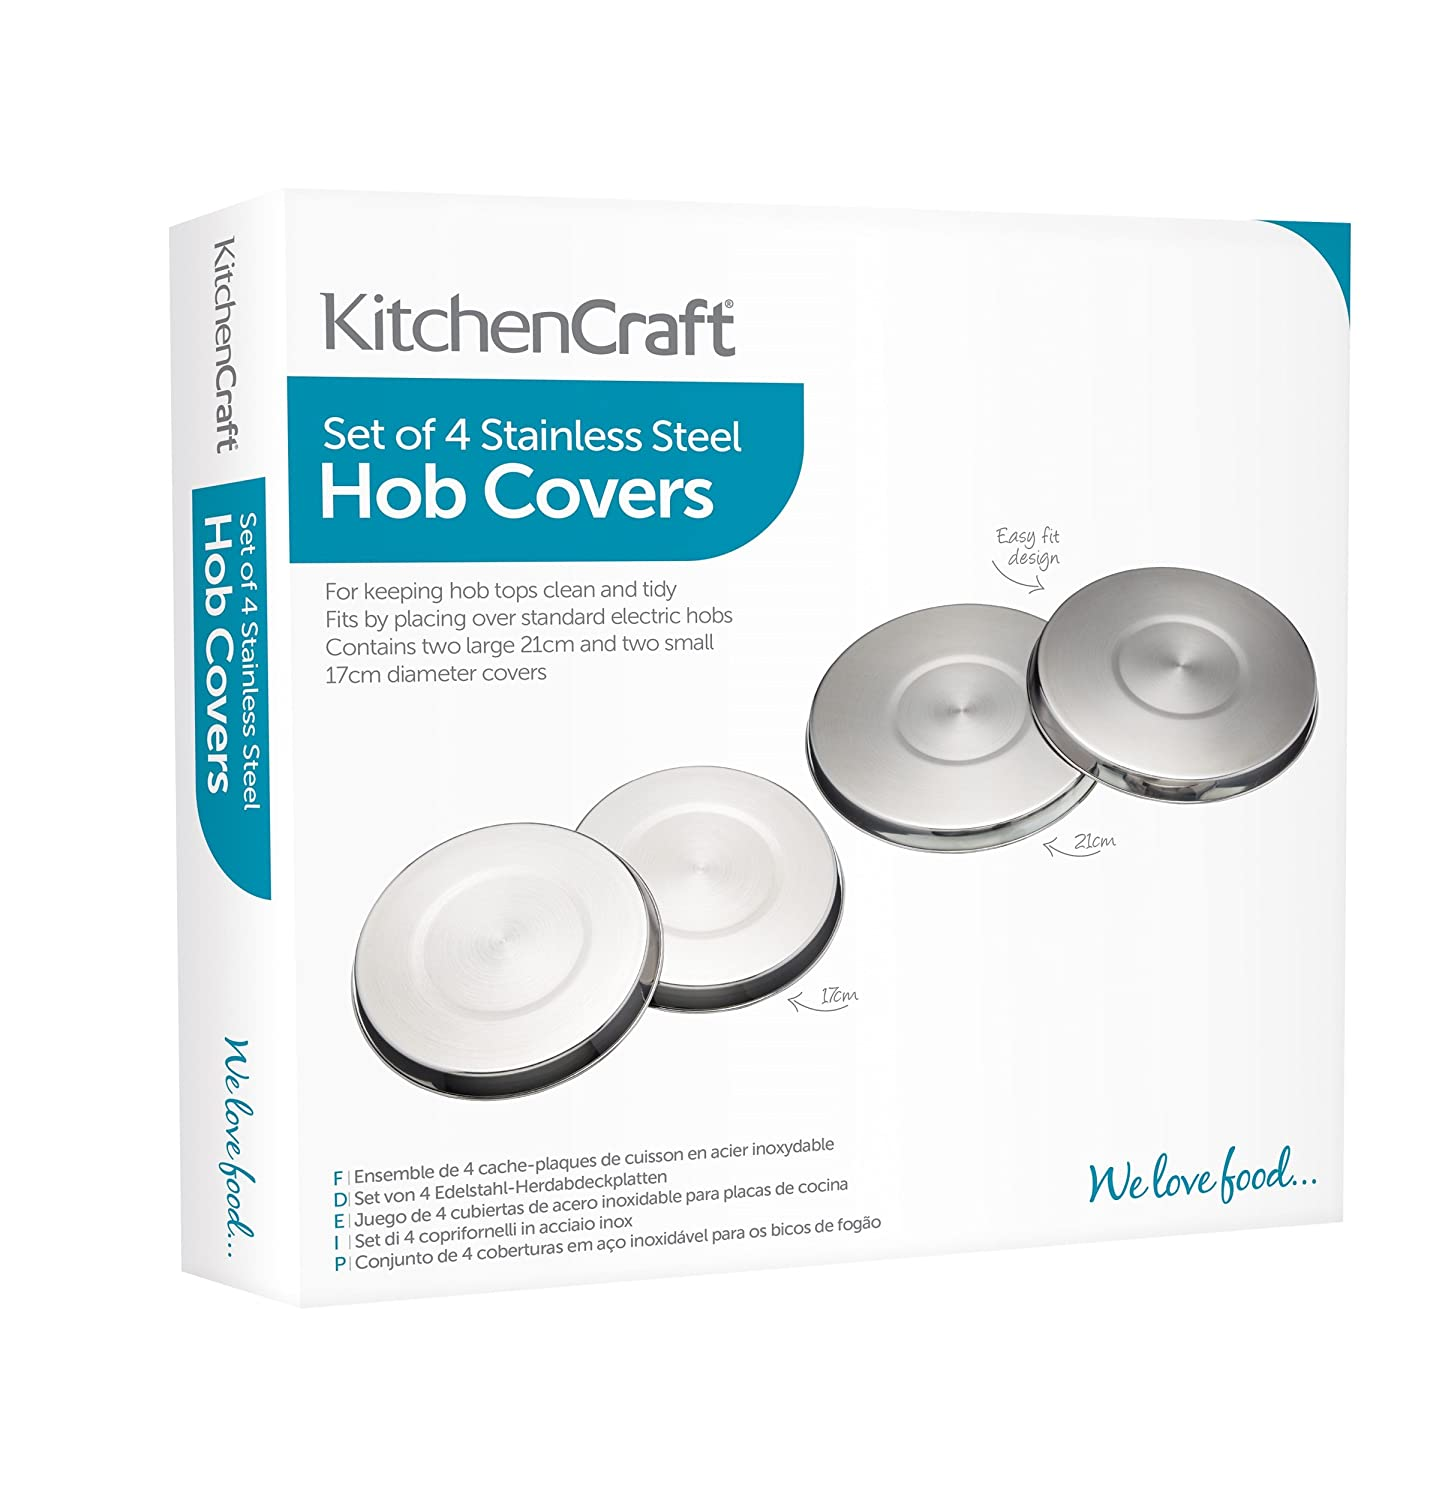 Amazon.com: Set Of 4 Stainless Steel Hob Cover: Food Savers: Kitchen & Dining